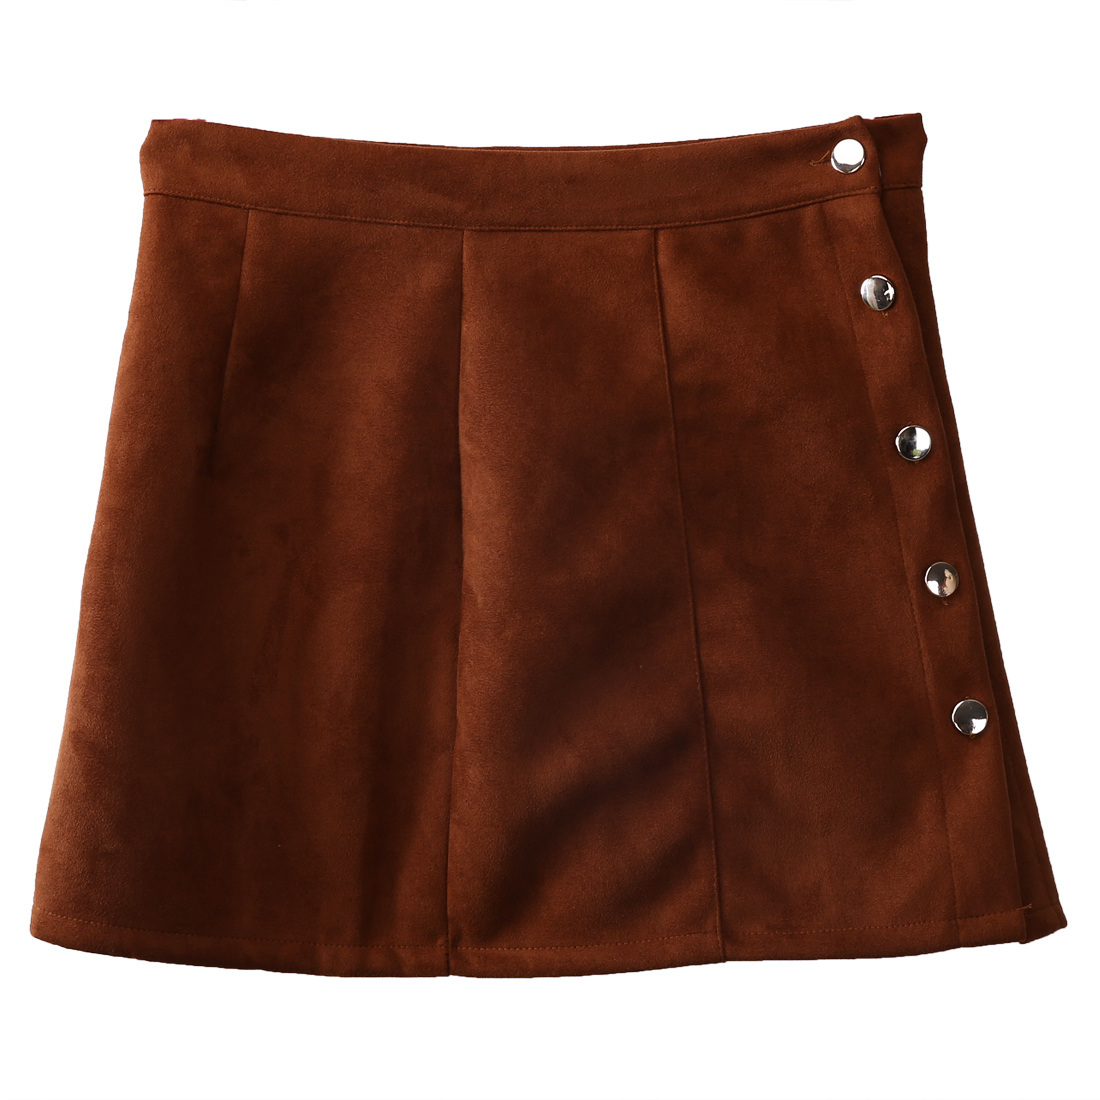 Brown Leather Mini Skirt Promotion-Shop for Promotional Brown ...